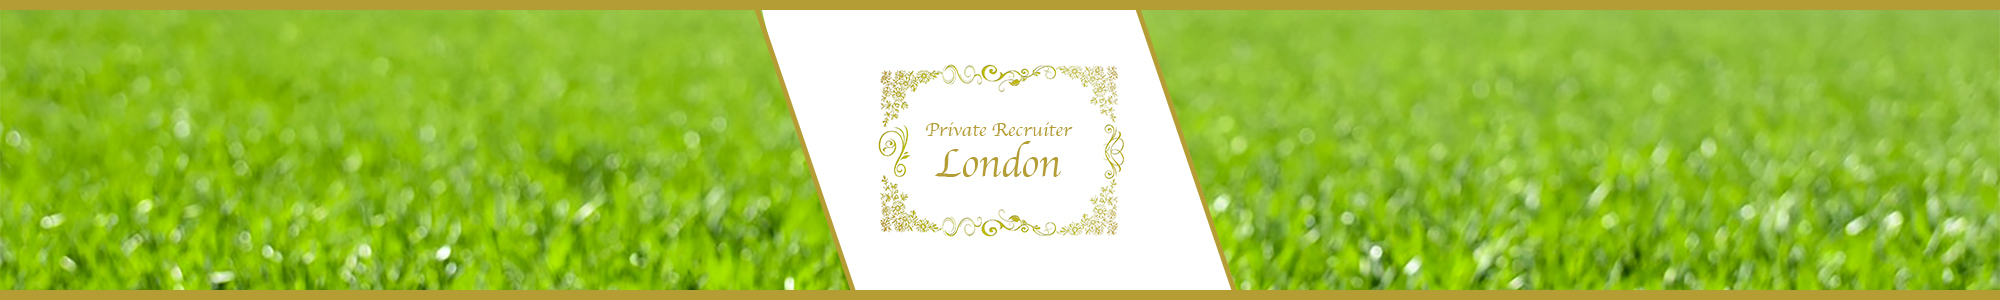 Private Recruiter - London